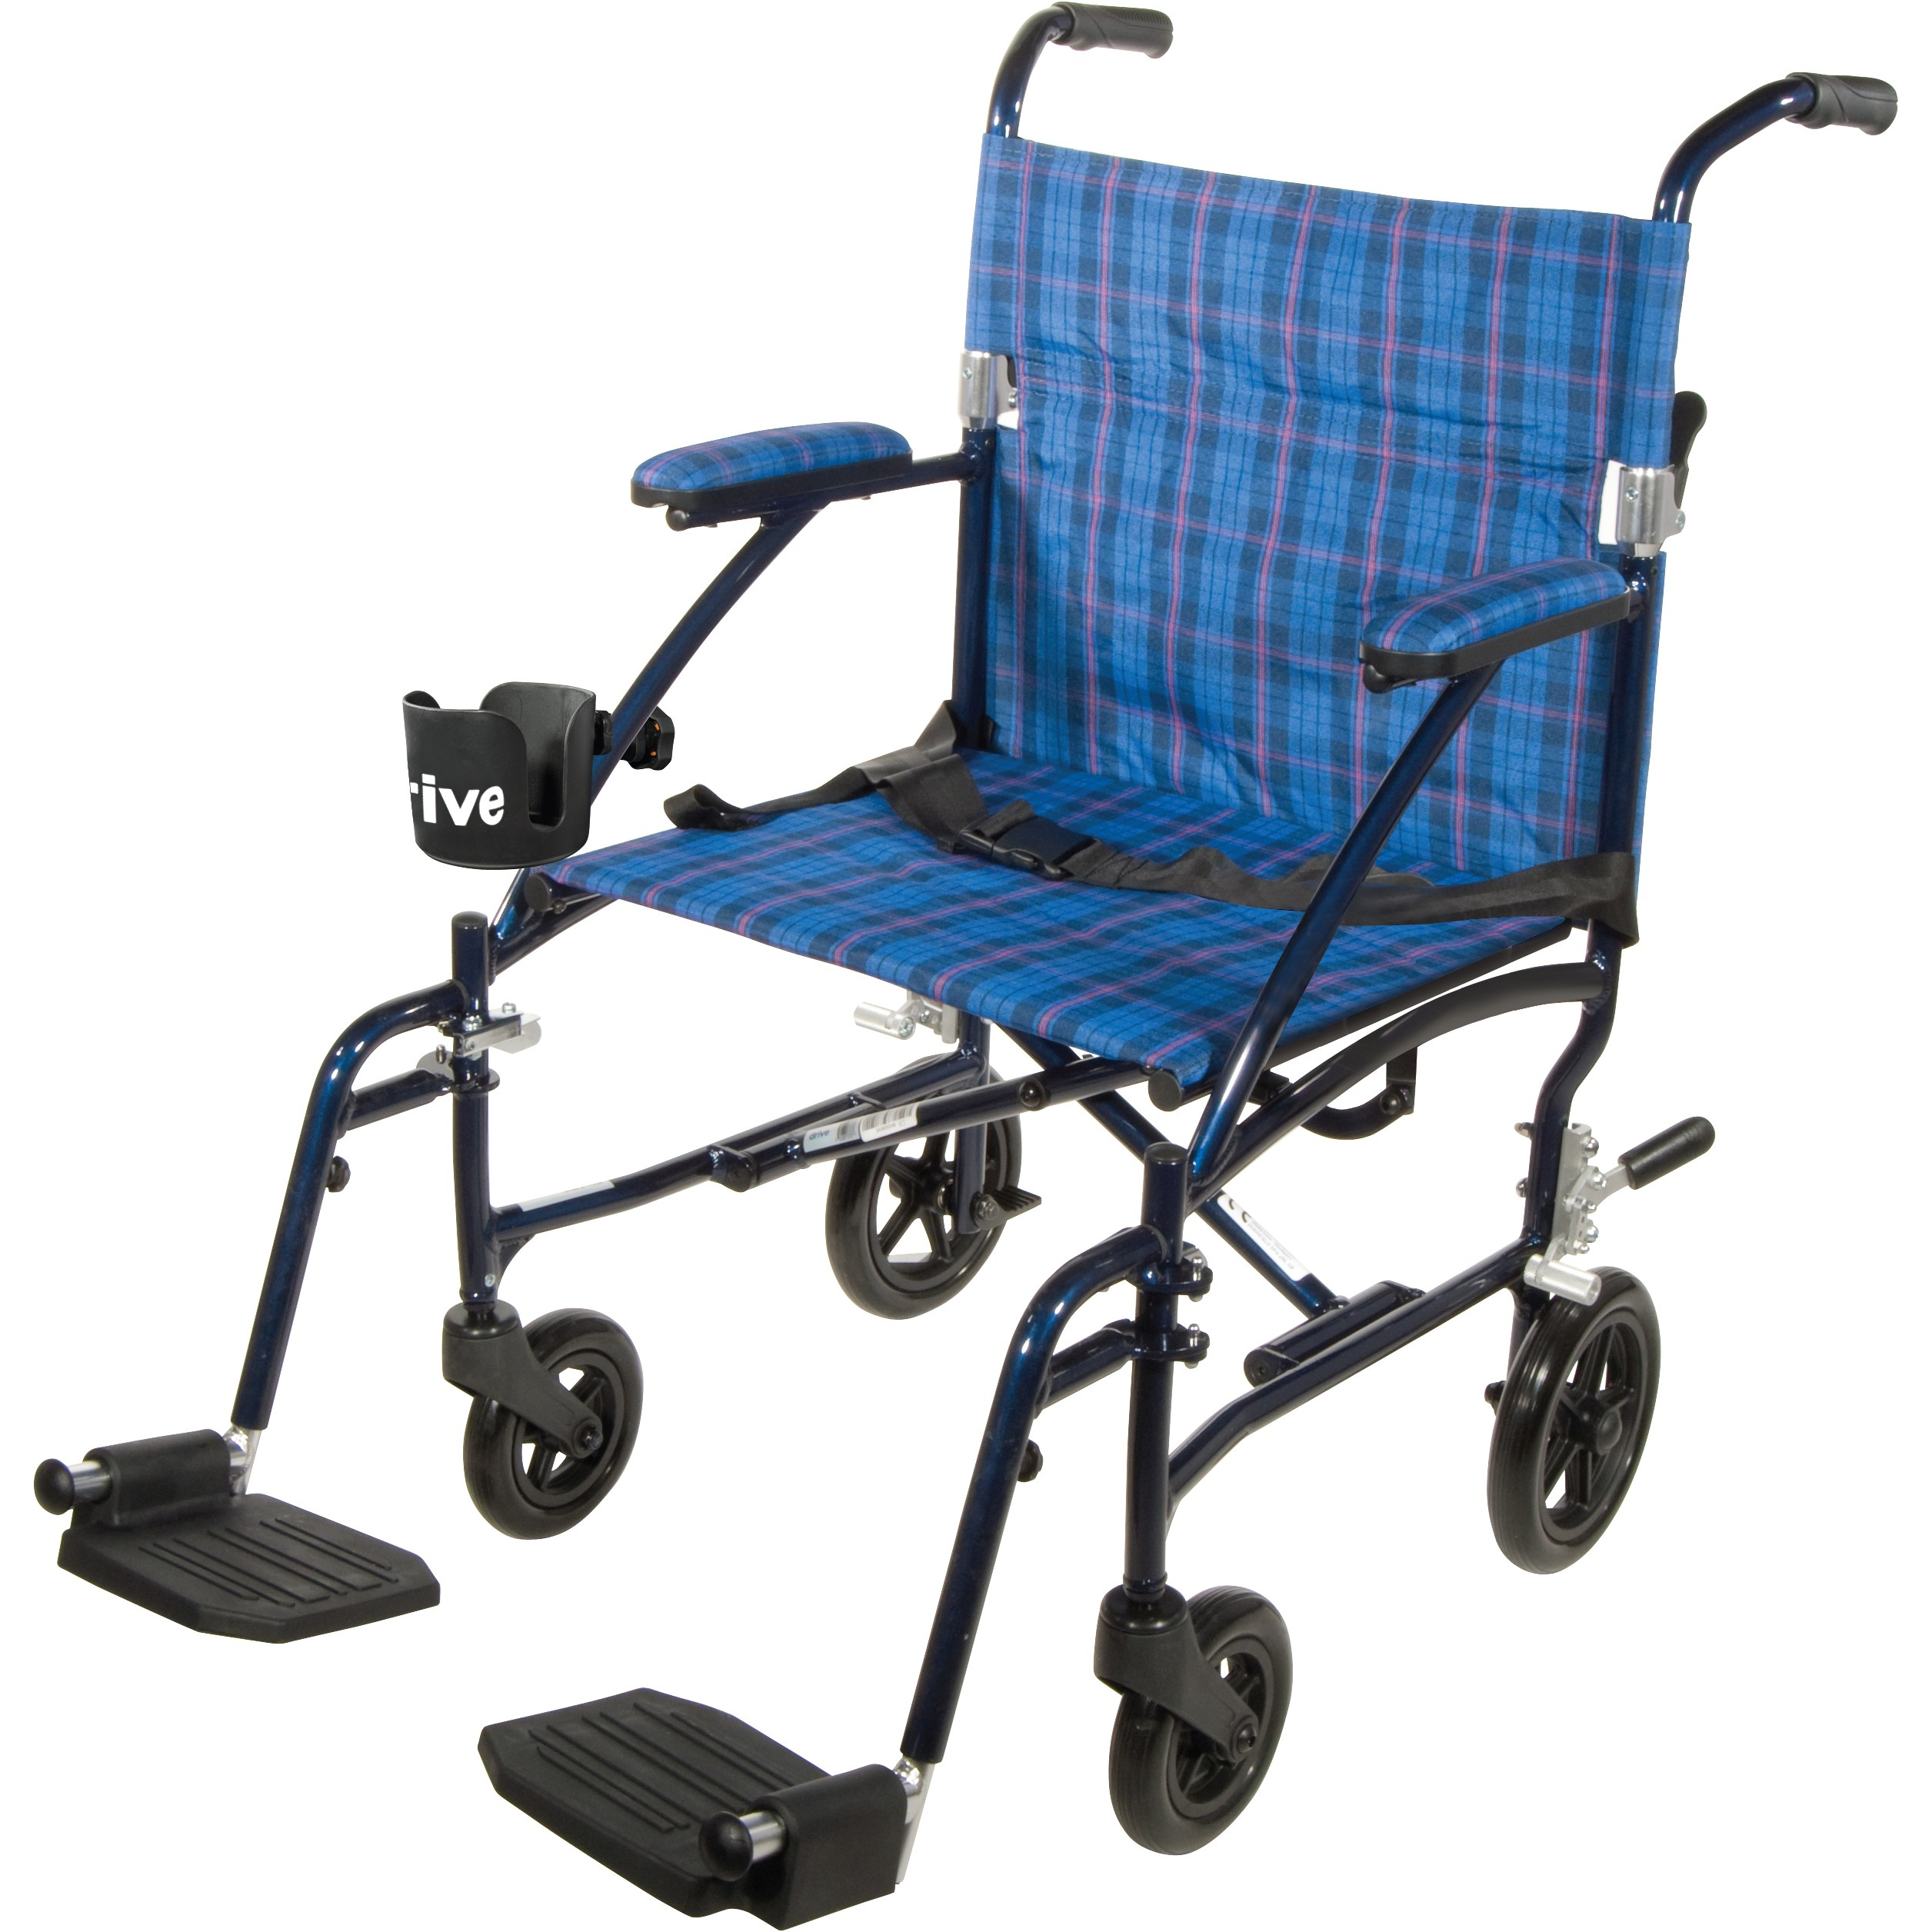 drive shower chair weight limit portable lounge cushion medical fly lite aluminum transport